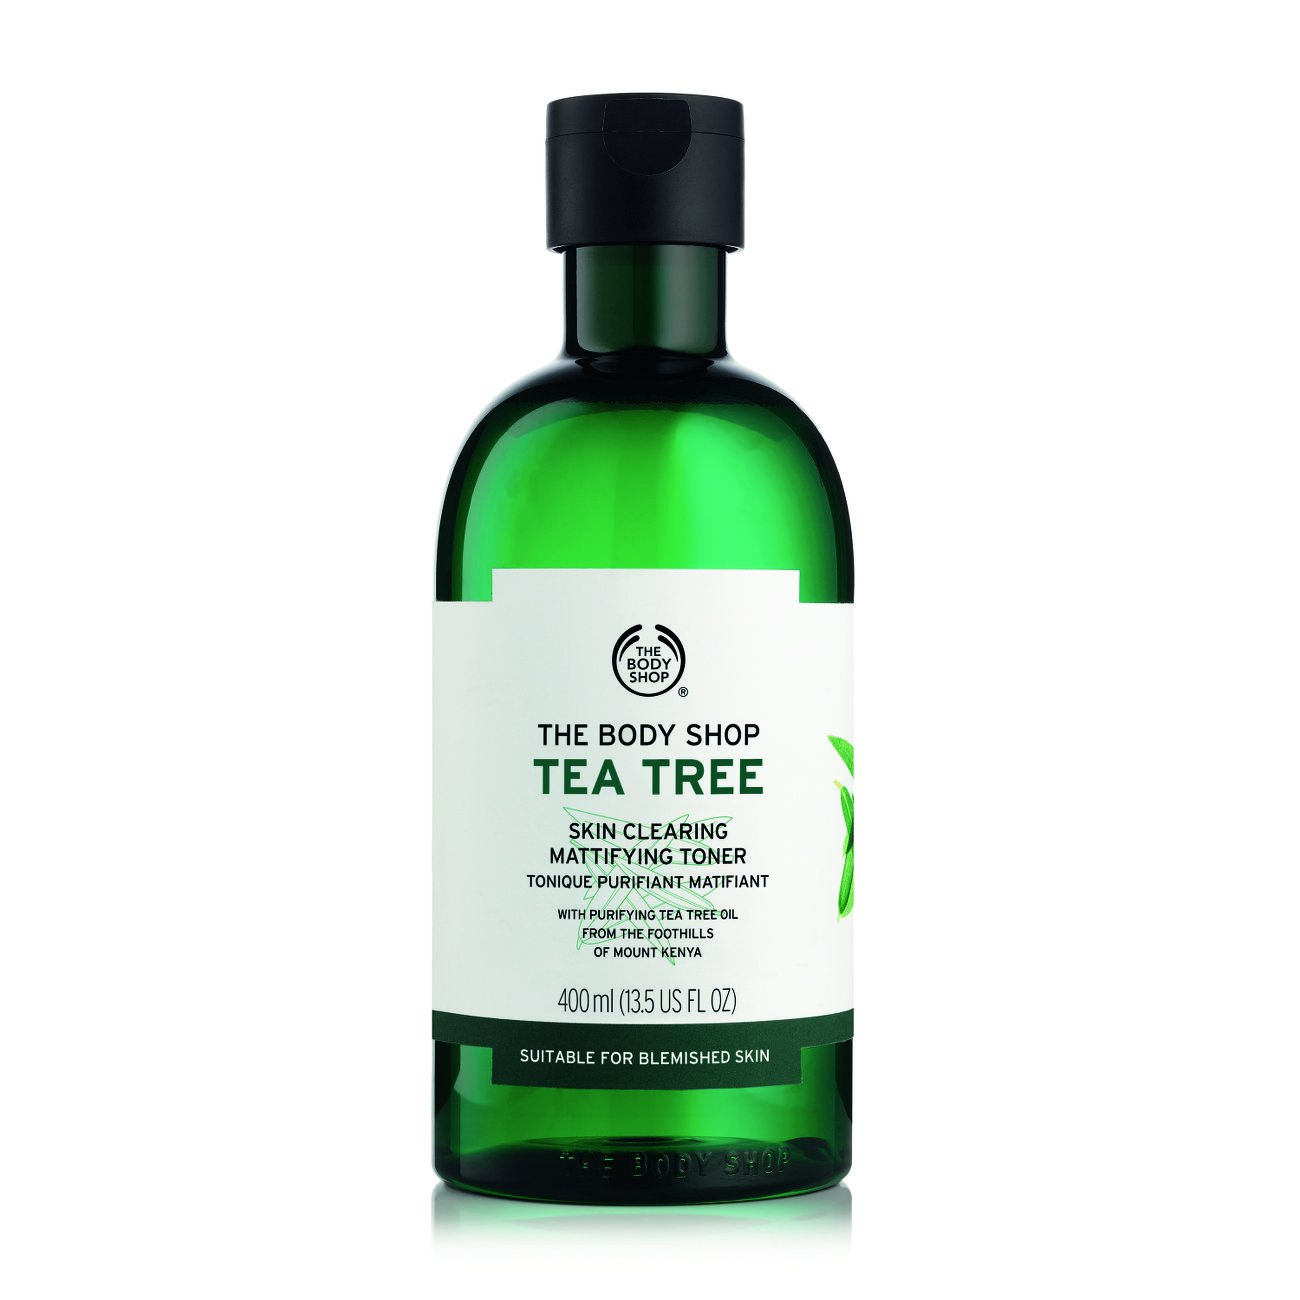 The Body Shop Tea Tree Skin Clearing Mattifying Toner, 13.5 Fl Oz (Vegan) by The Body Shop